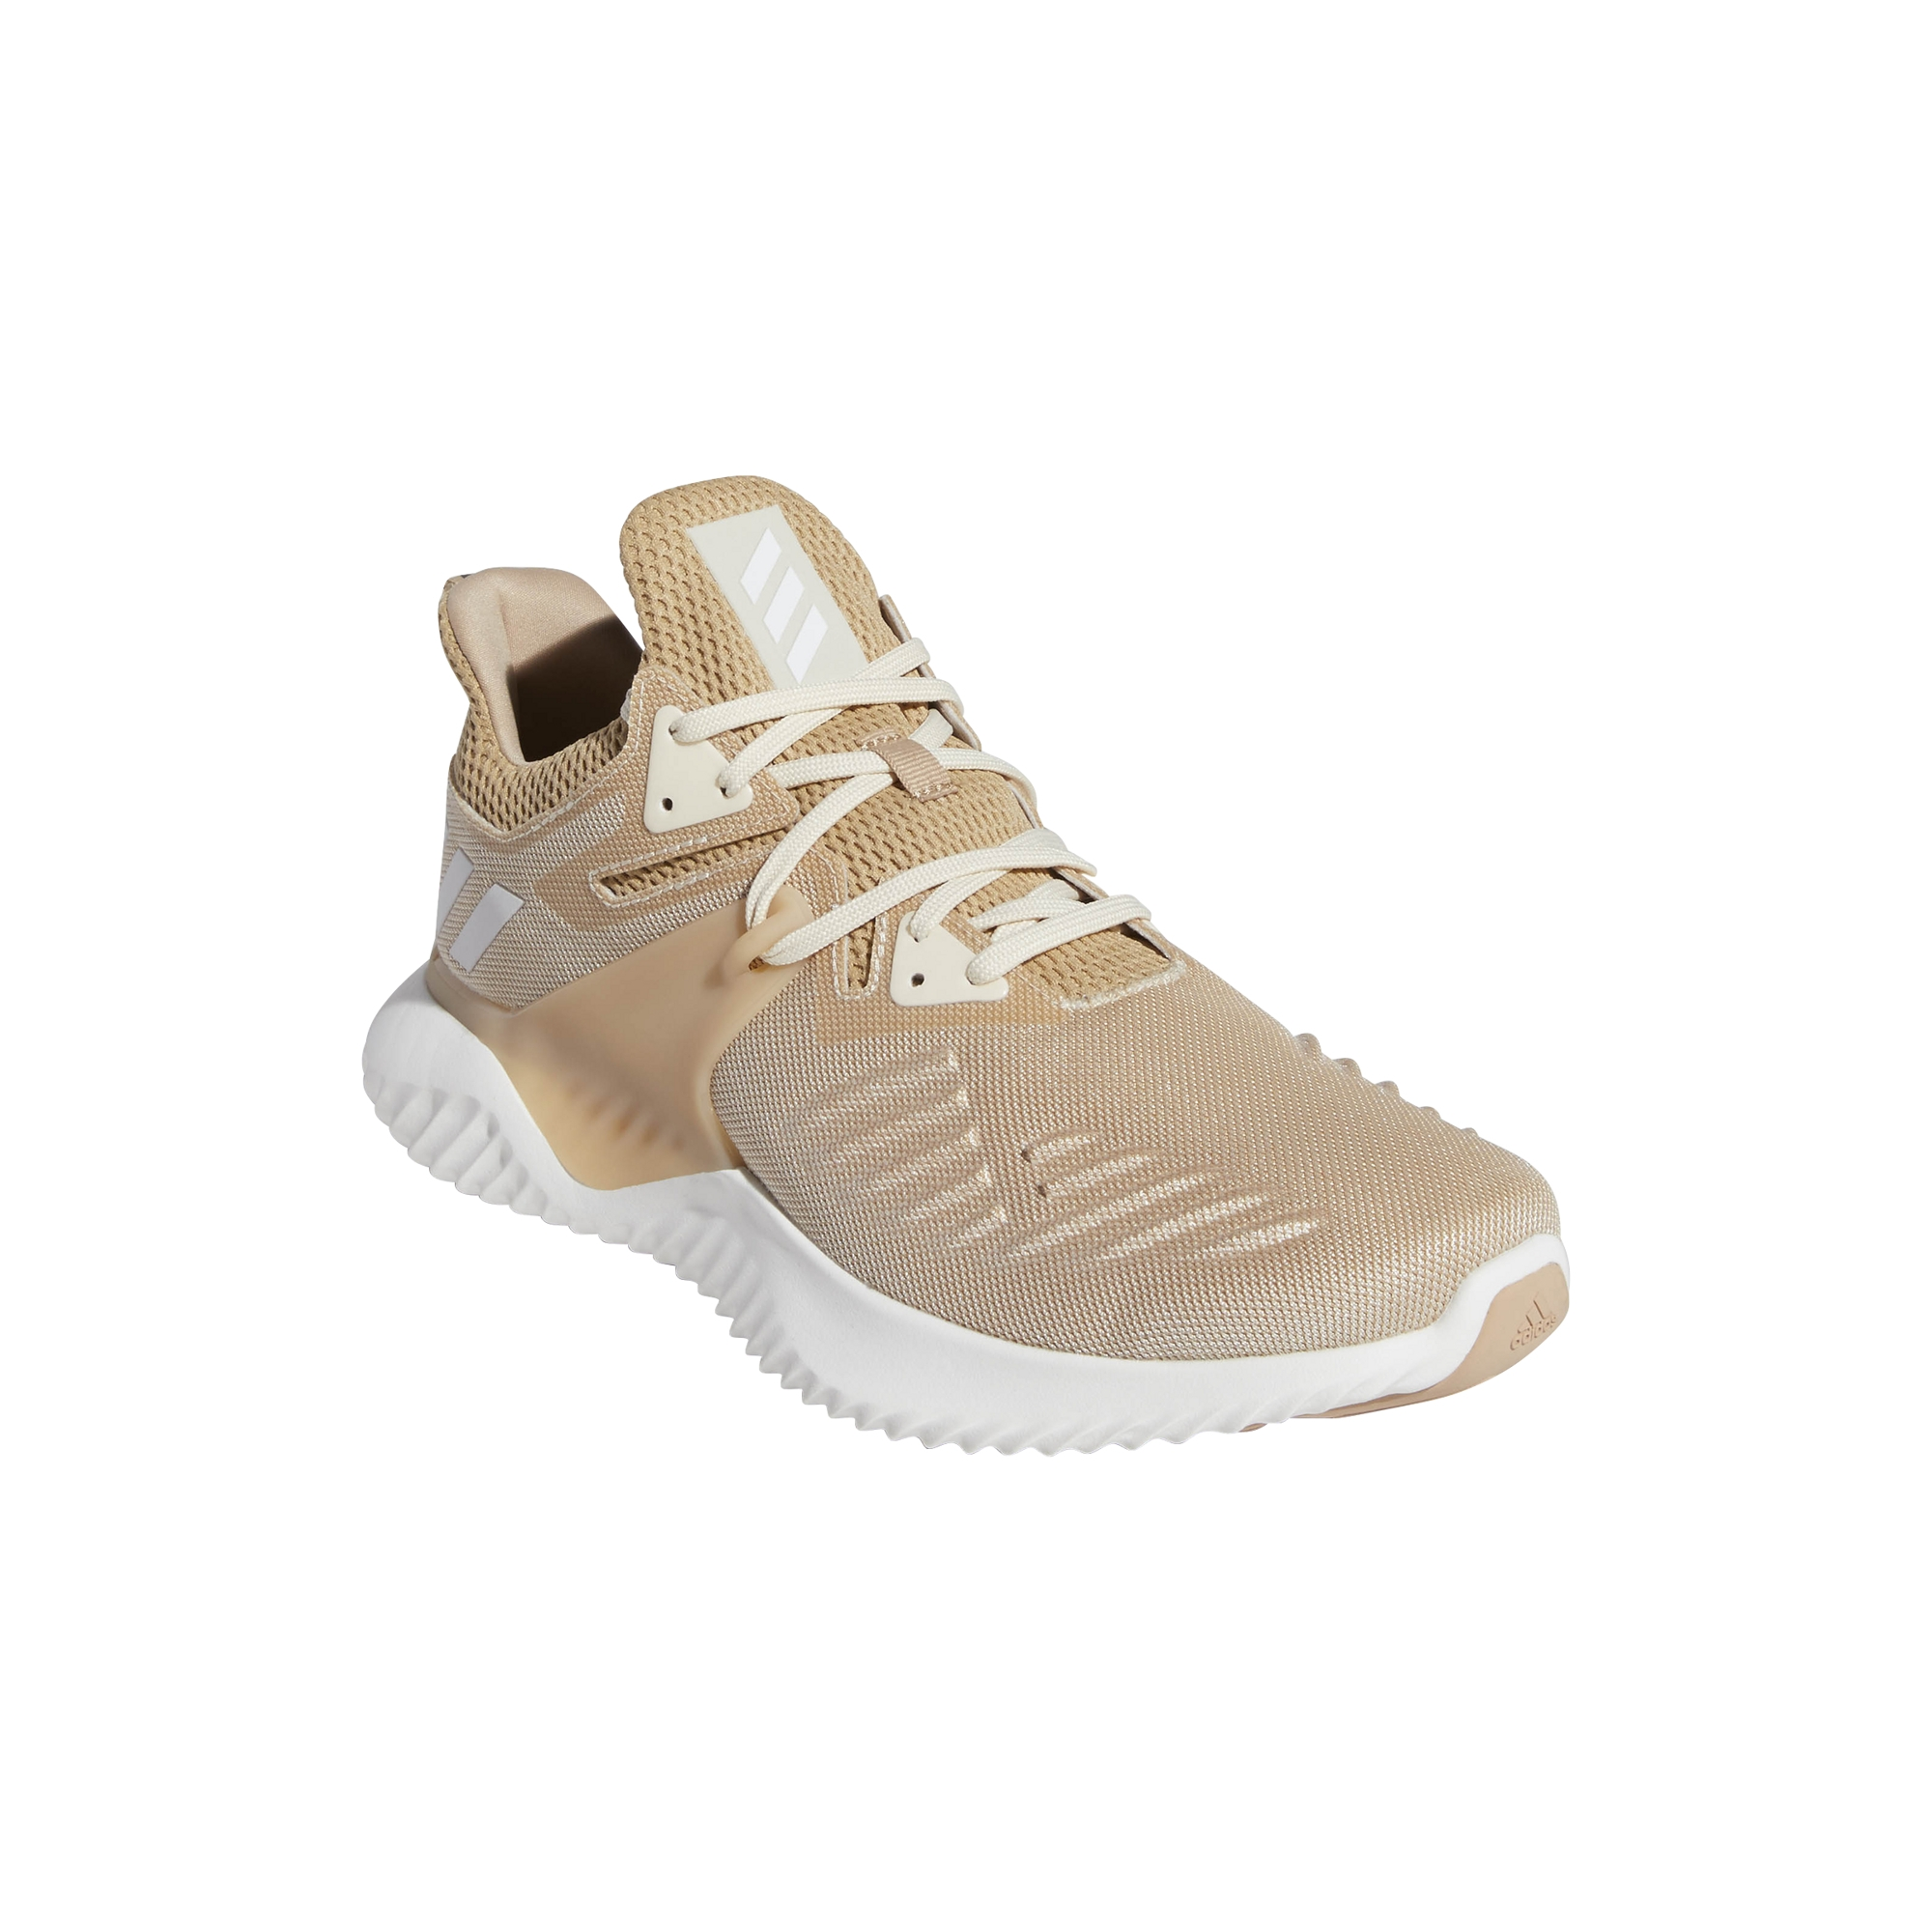 separation shoes 0d422 73c2c Chaussures adidas Alphabounce Beyond